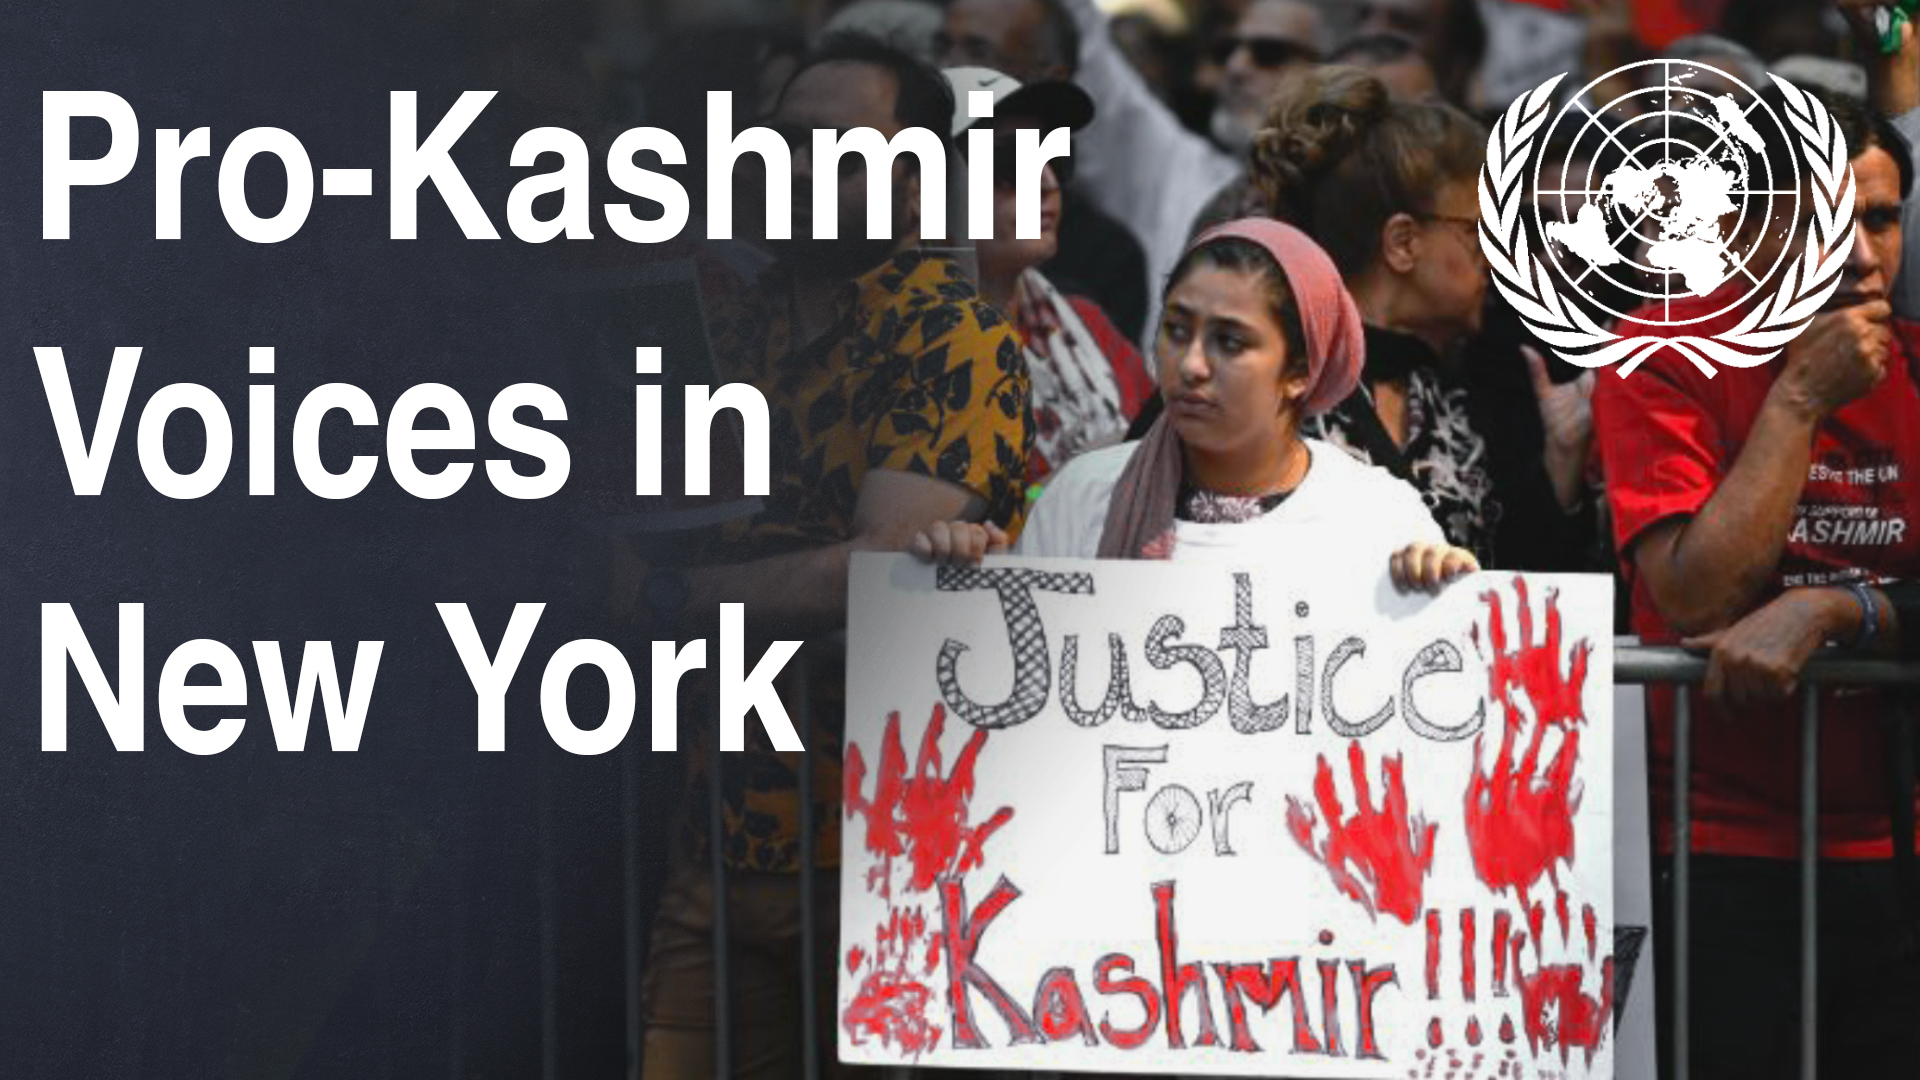 Pro-Kashmir Voices in New York